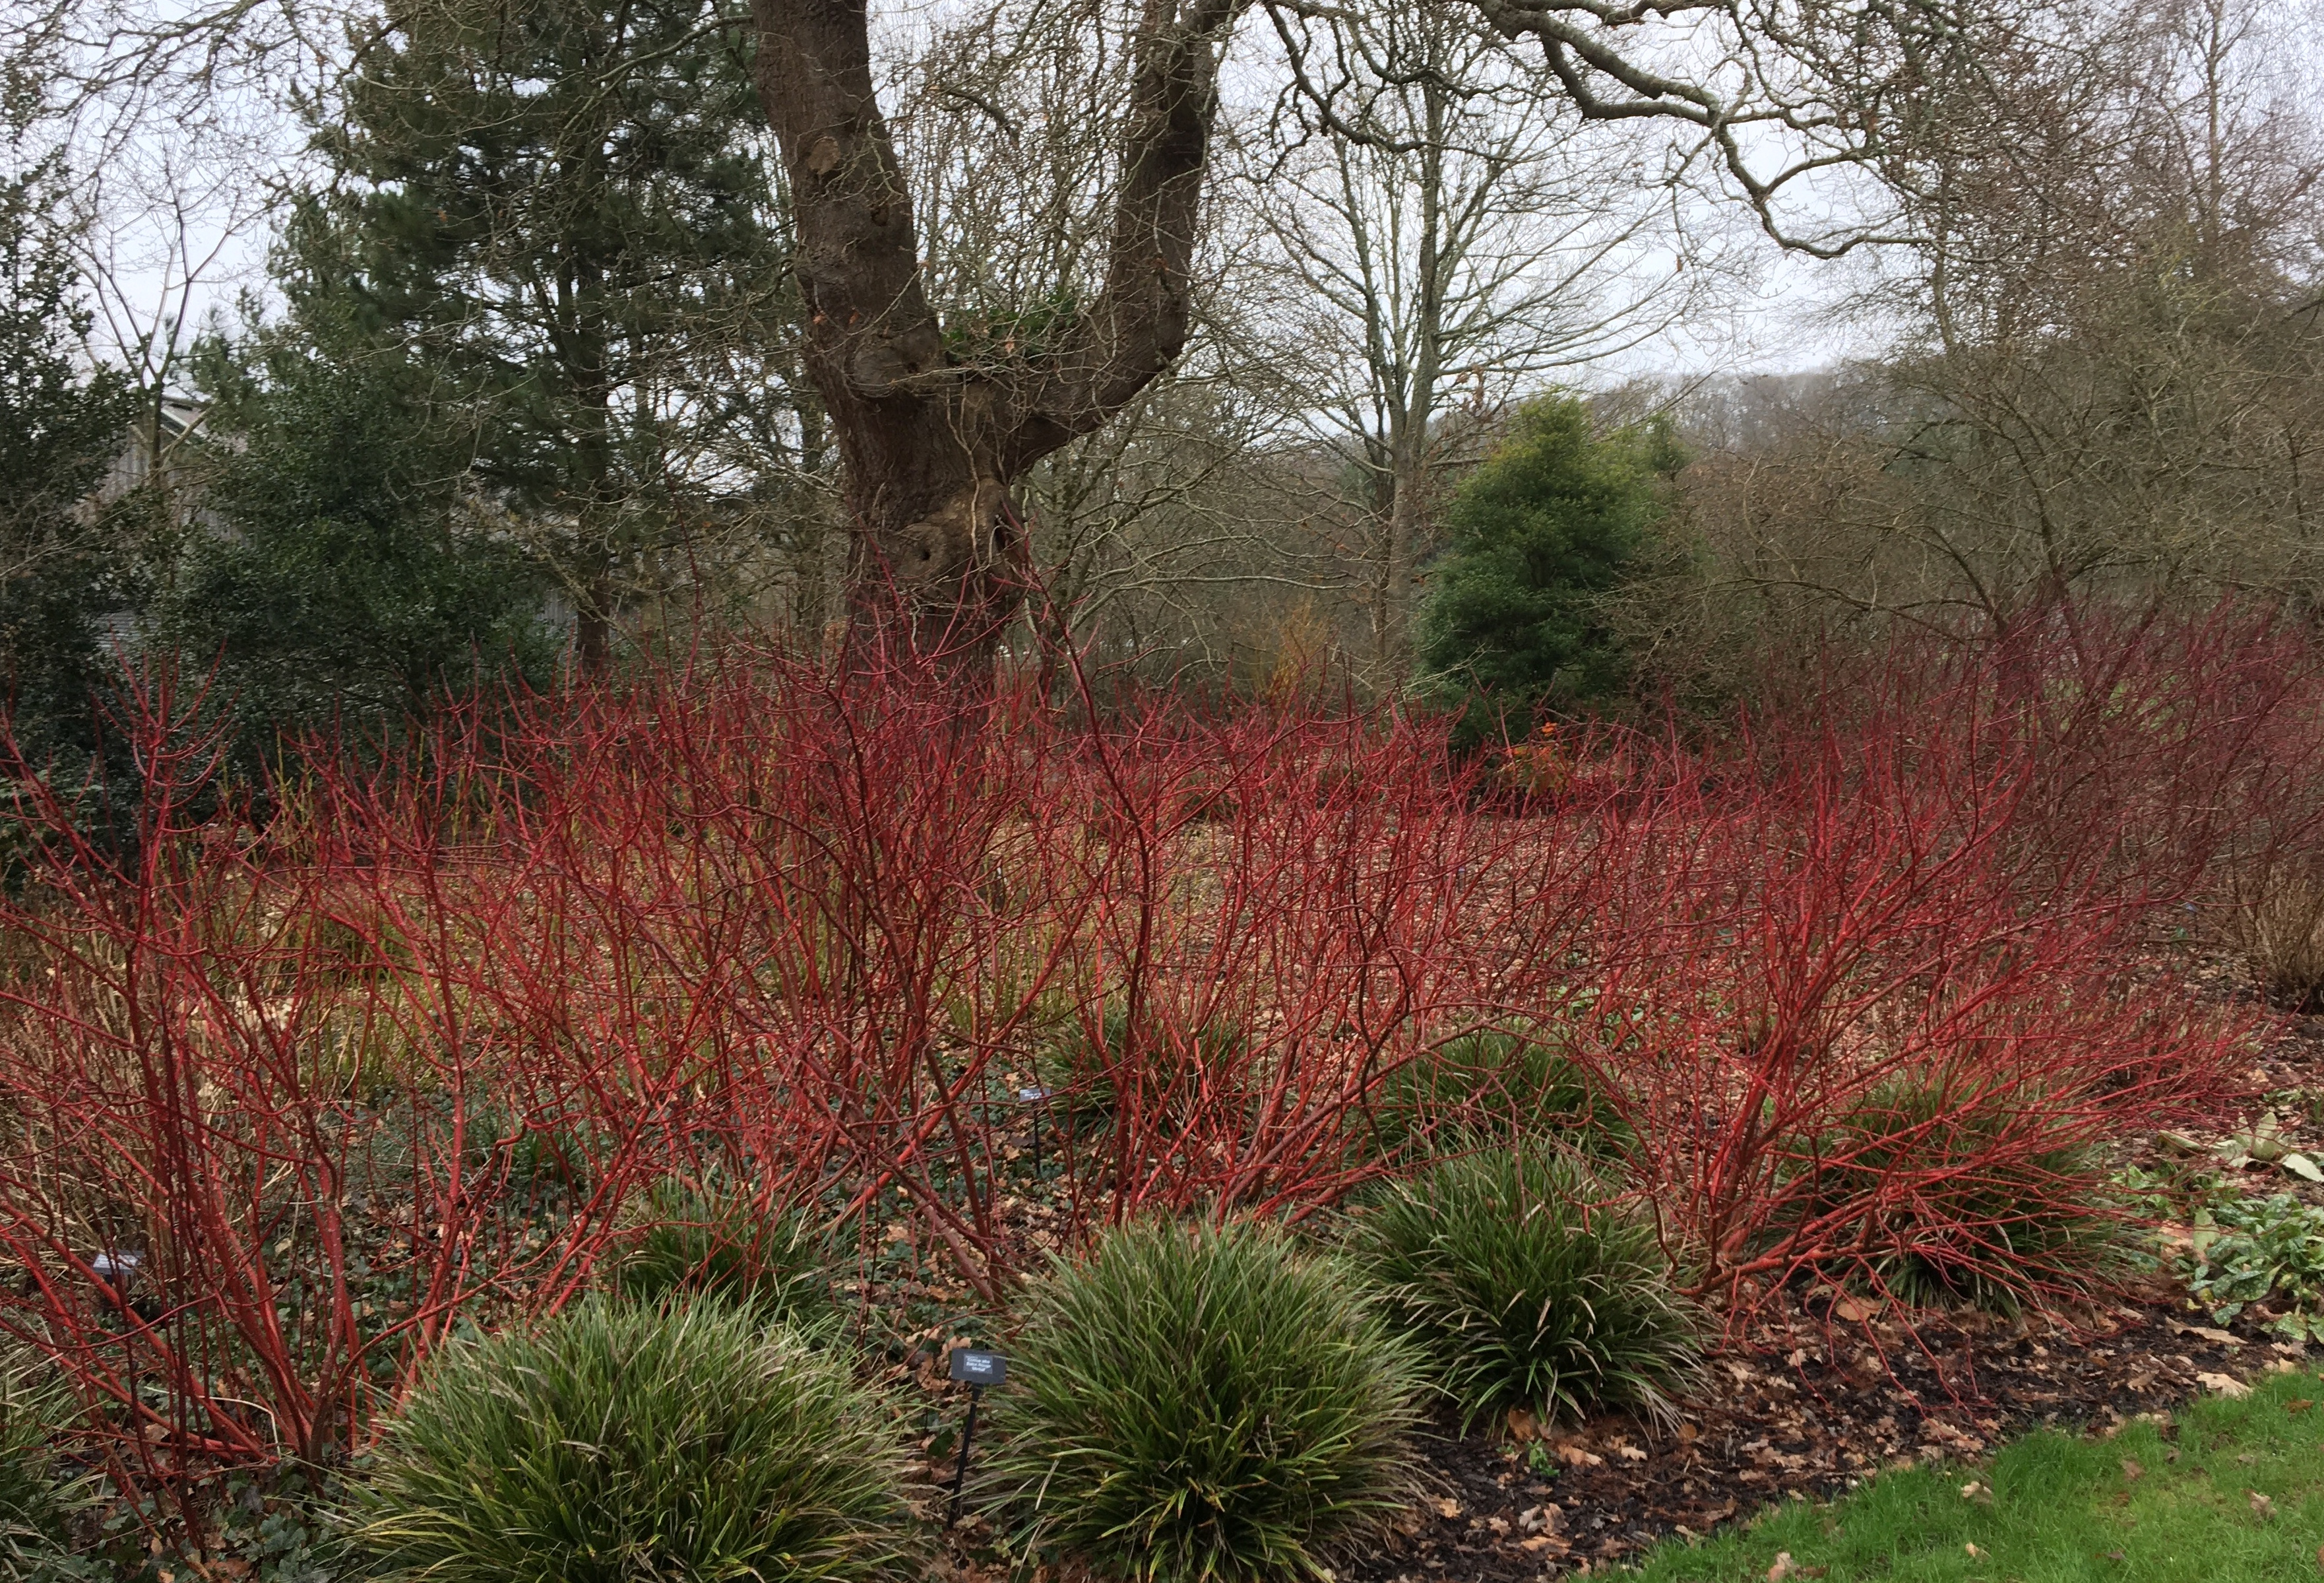 Red cornus stems in a winter garden what jobs to do in the garden in February